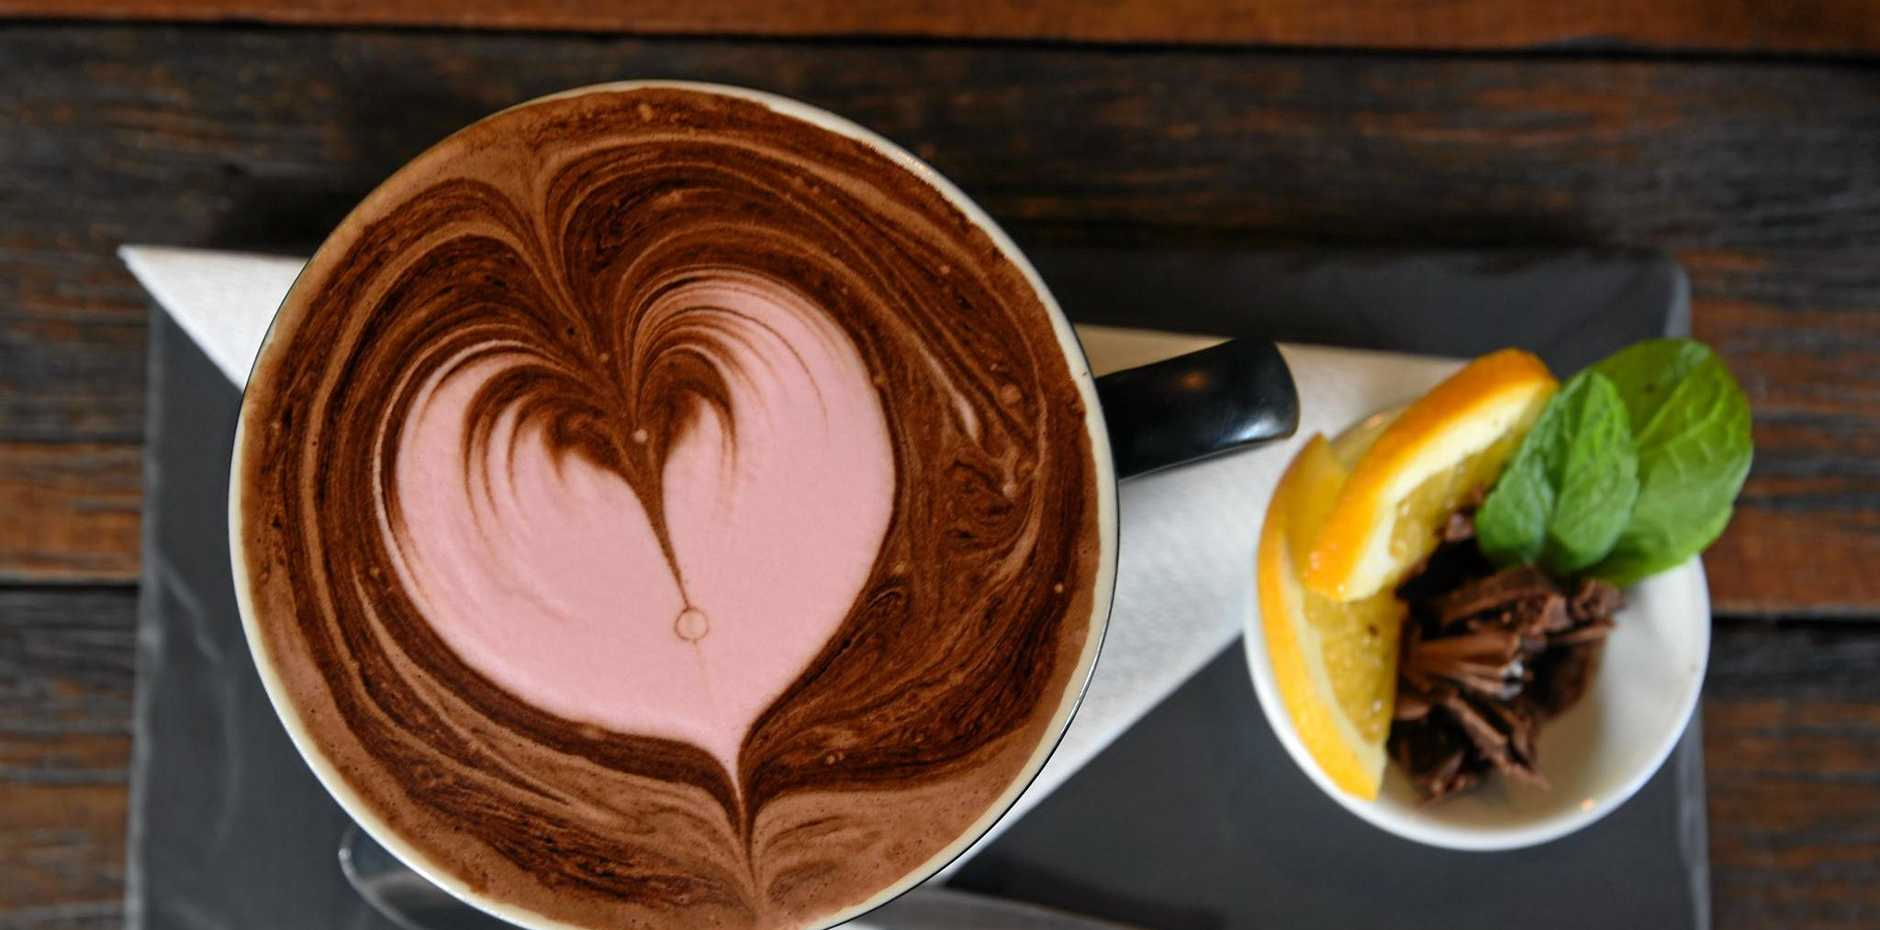 Find out which cafes and restaurants are open in Lismore over the festive season.